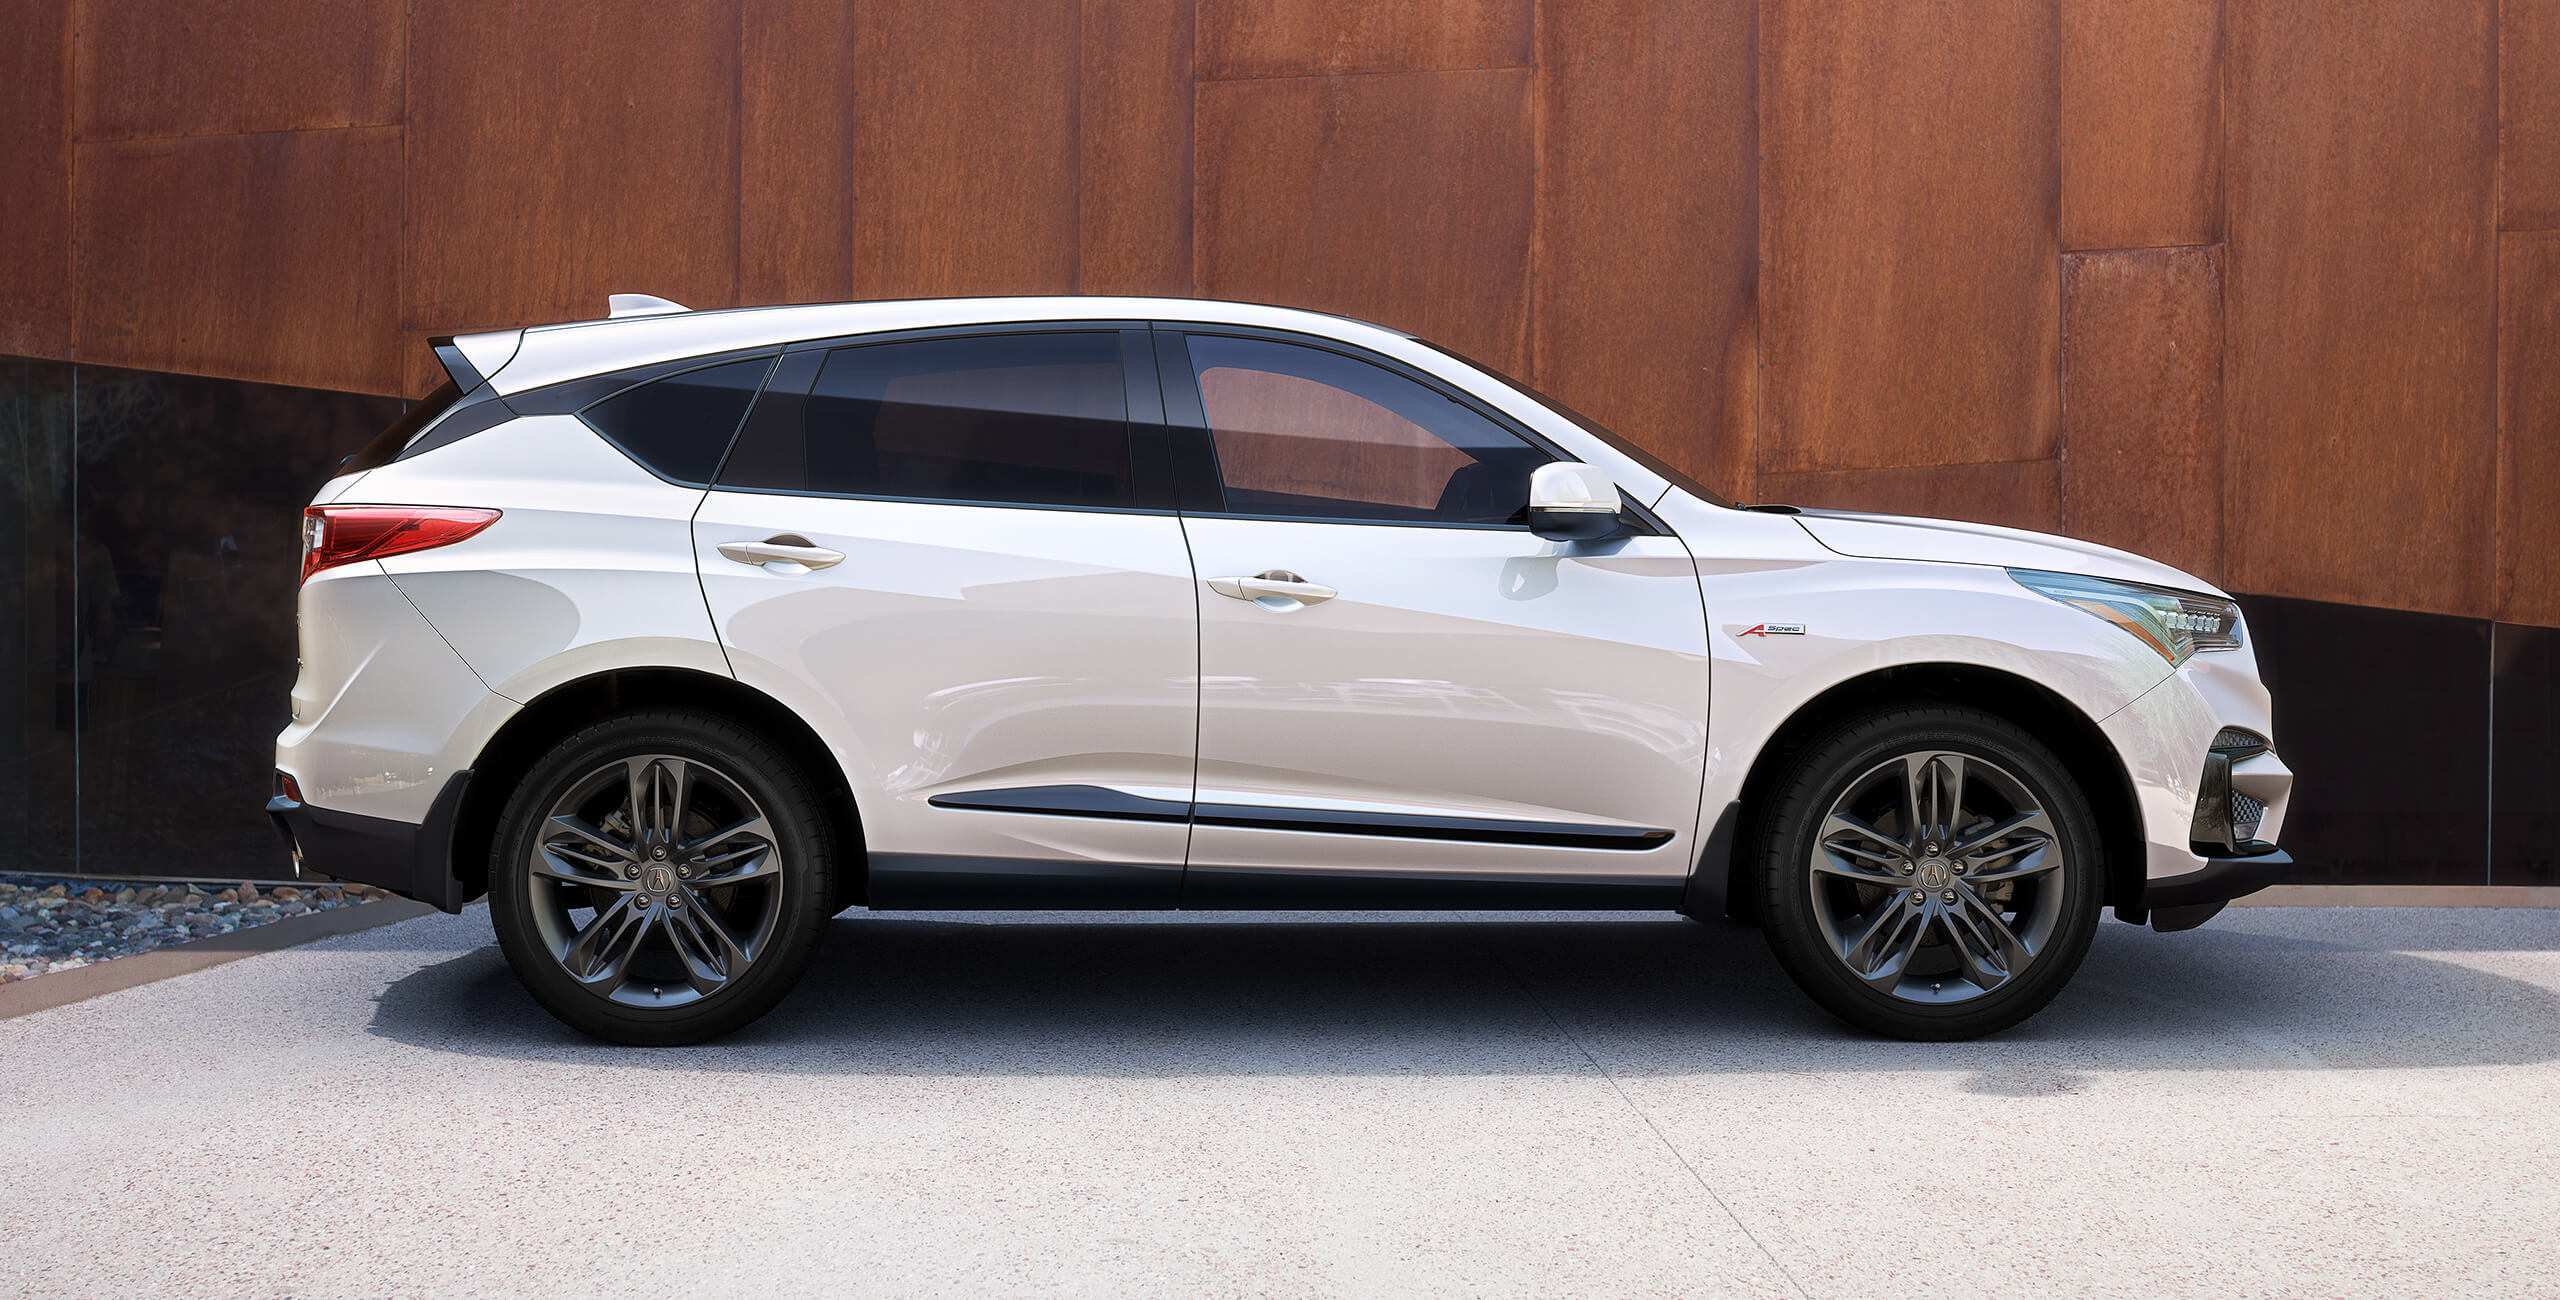 60 All New The Acura Rdx 2019 Brochure Specs Release with The Acura Rdx 2019 Brochure Specs